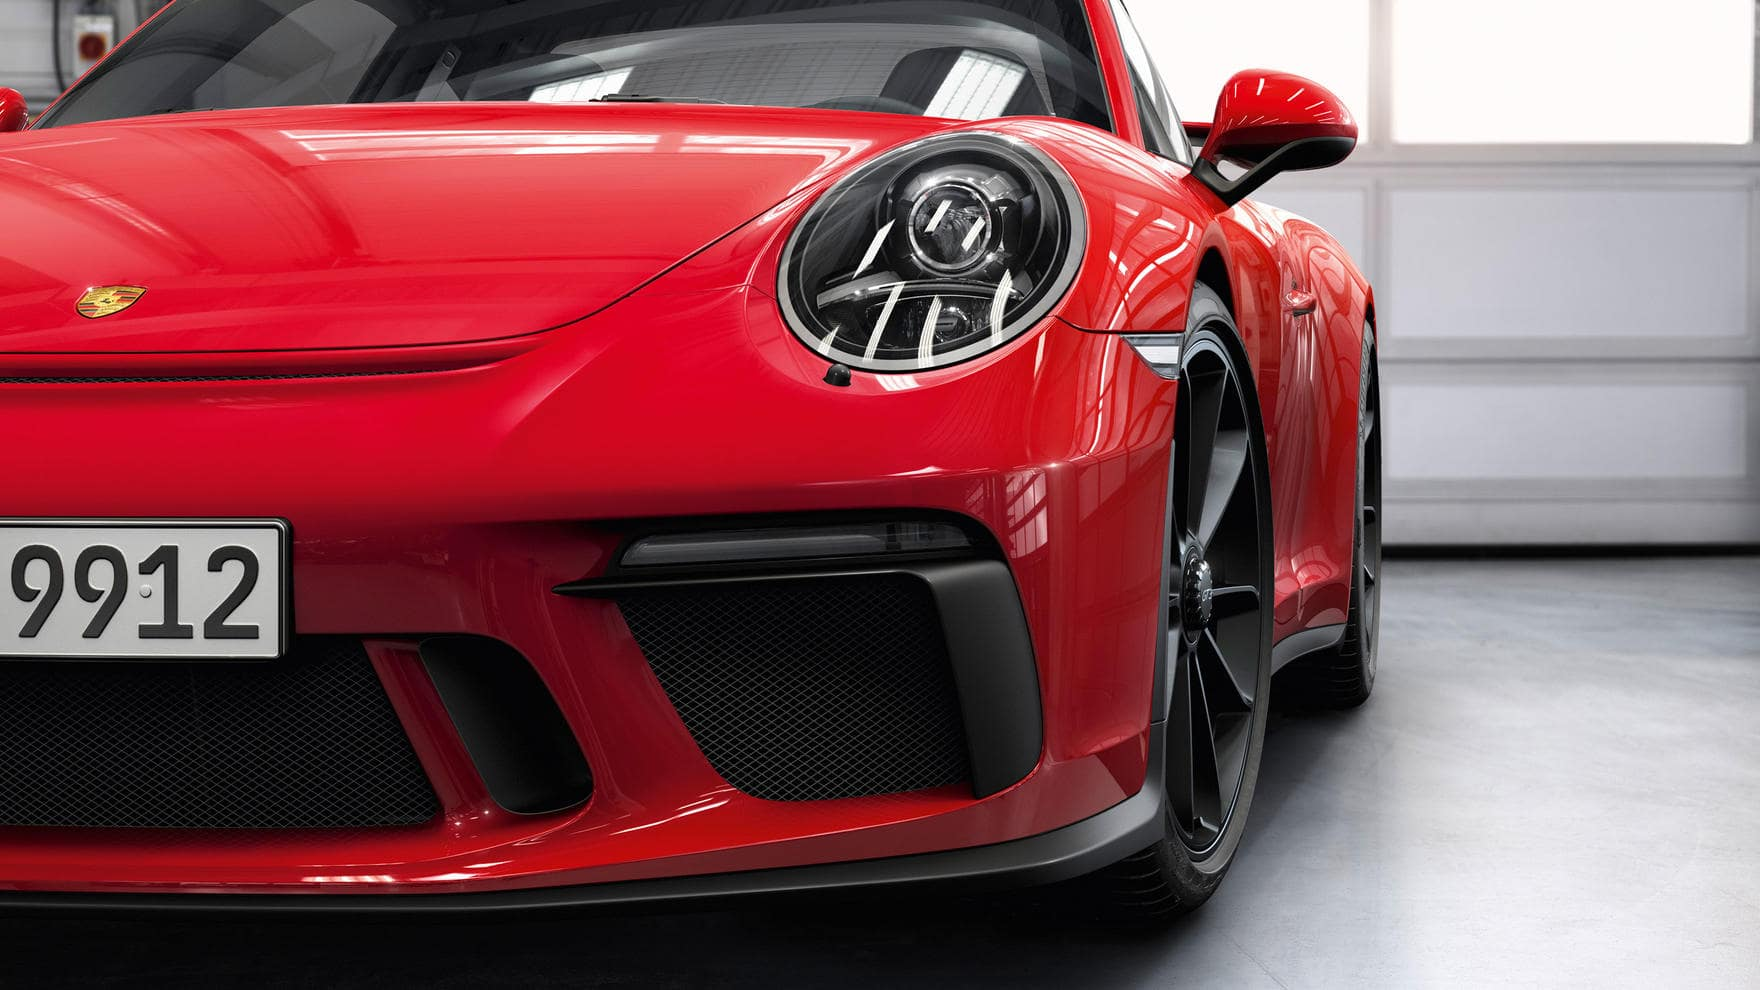 911 GT3 front